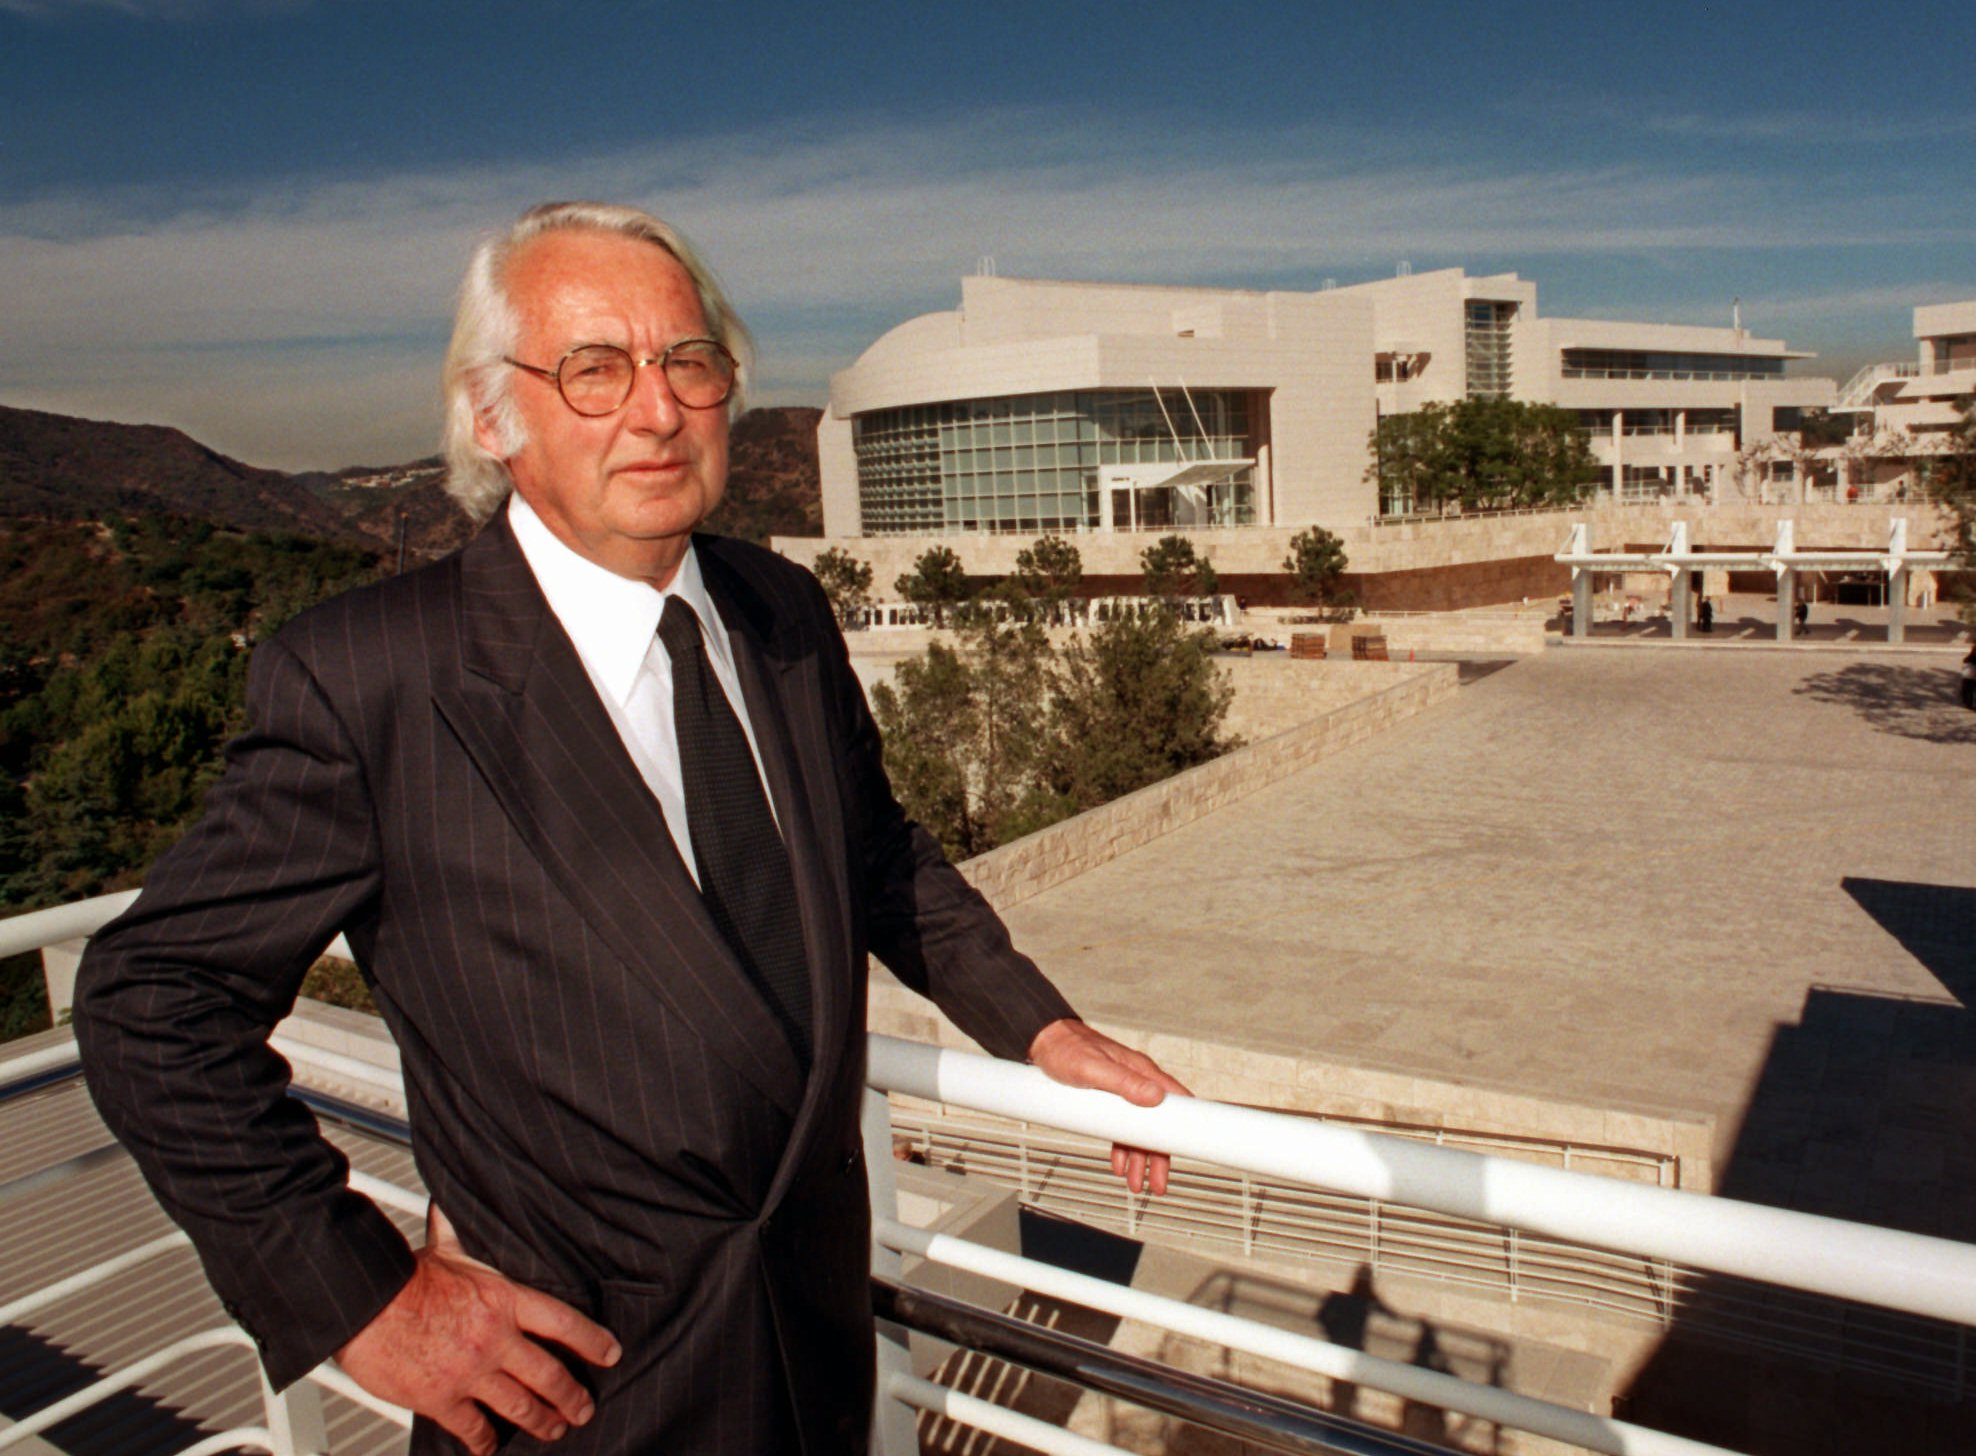 Architect Richard Meier stands at the Getty Center in Los Angeles in November 1997, a month before it opened to the public.